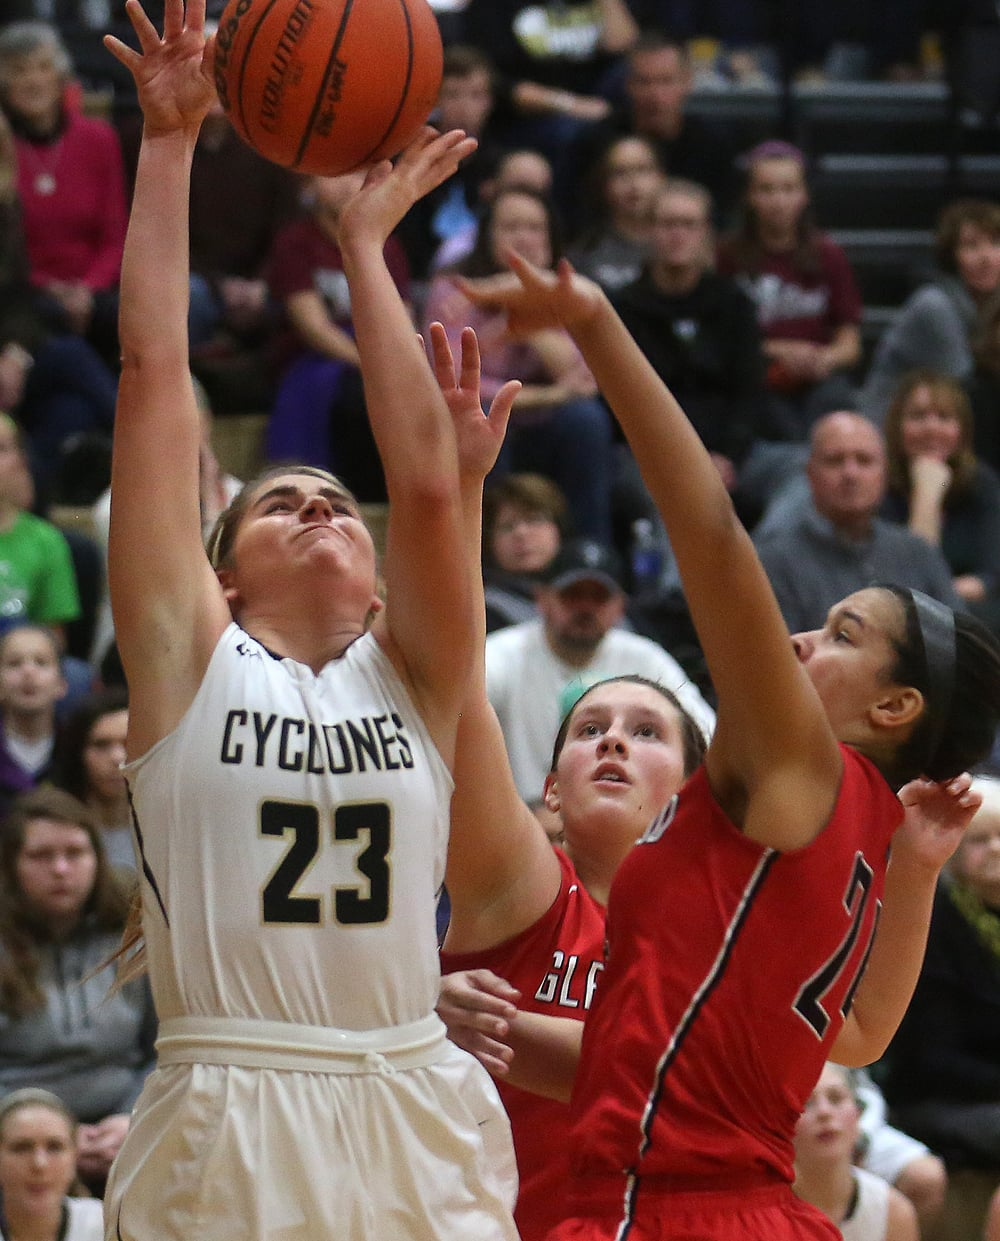 Cyclones player Kenzie Trees tries to put up a shot late in the game while being defended by Titan players Makenzie Bray at center and Kiara Downey. David Spencer/The State Journal Register